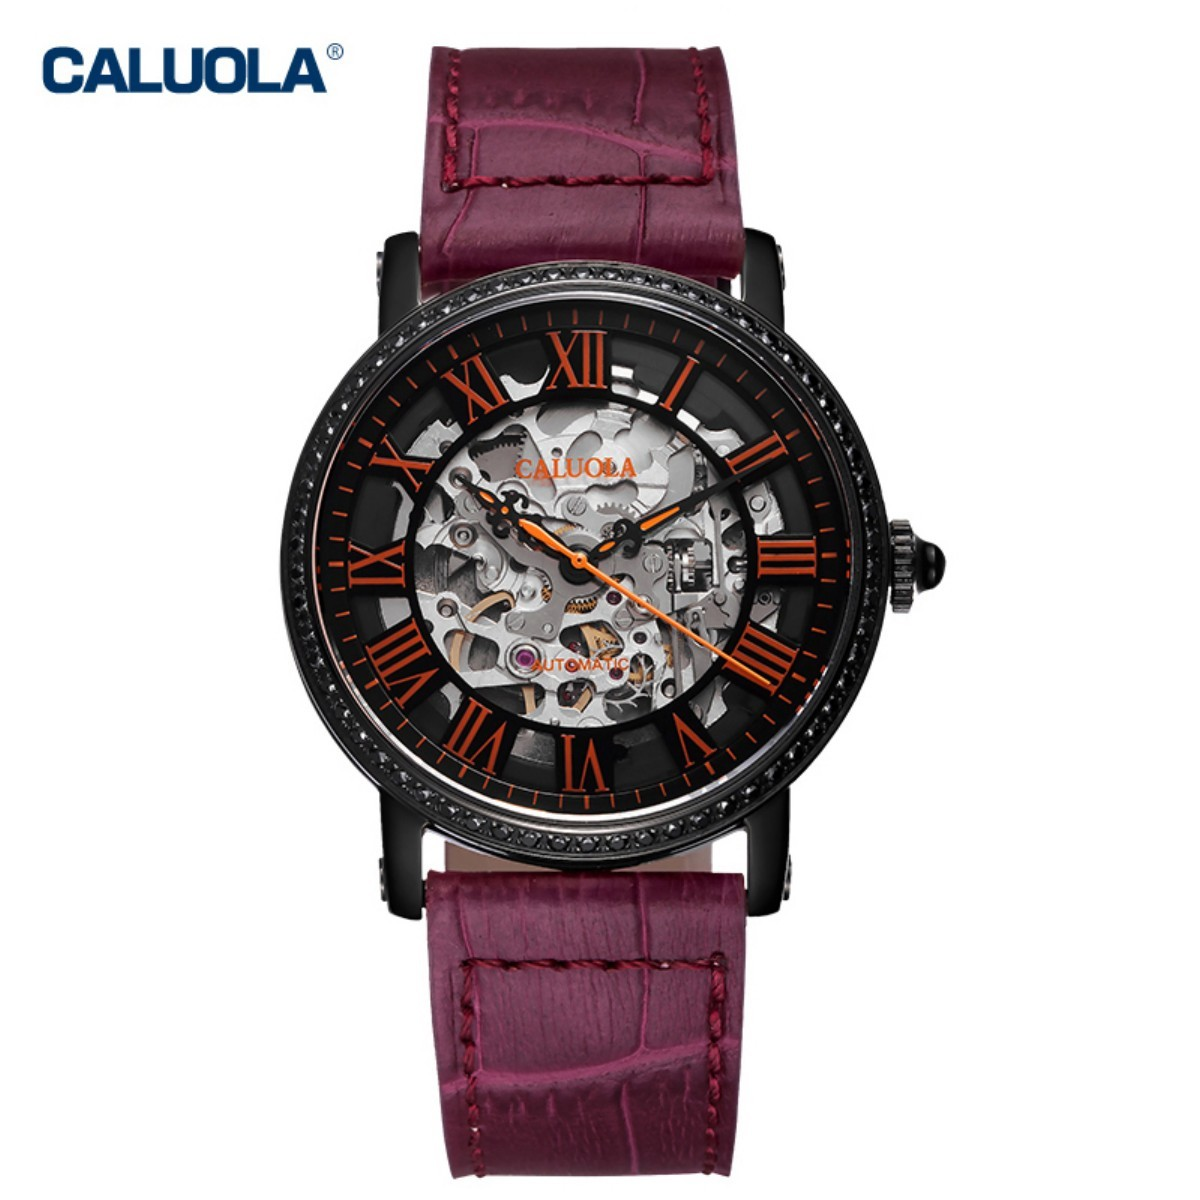 Caluola Women Watch 35mm PVD 1115